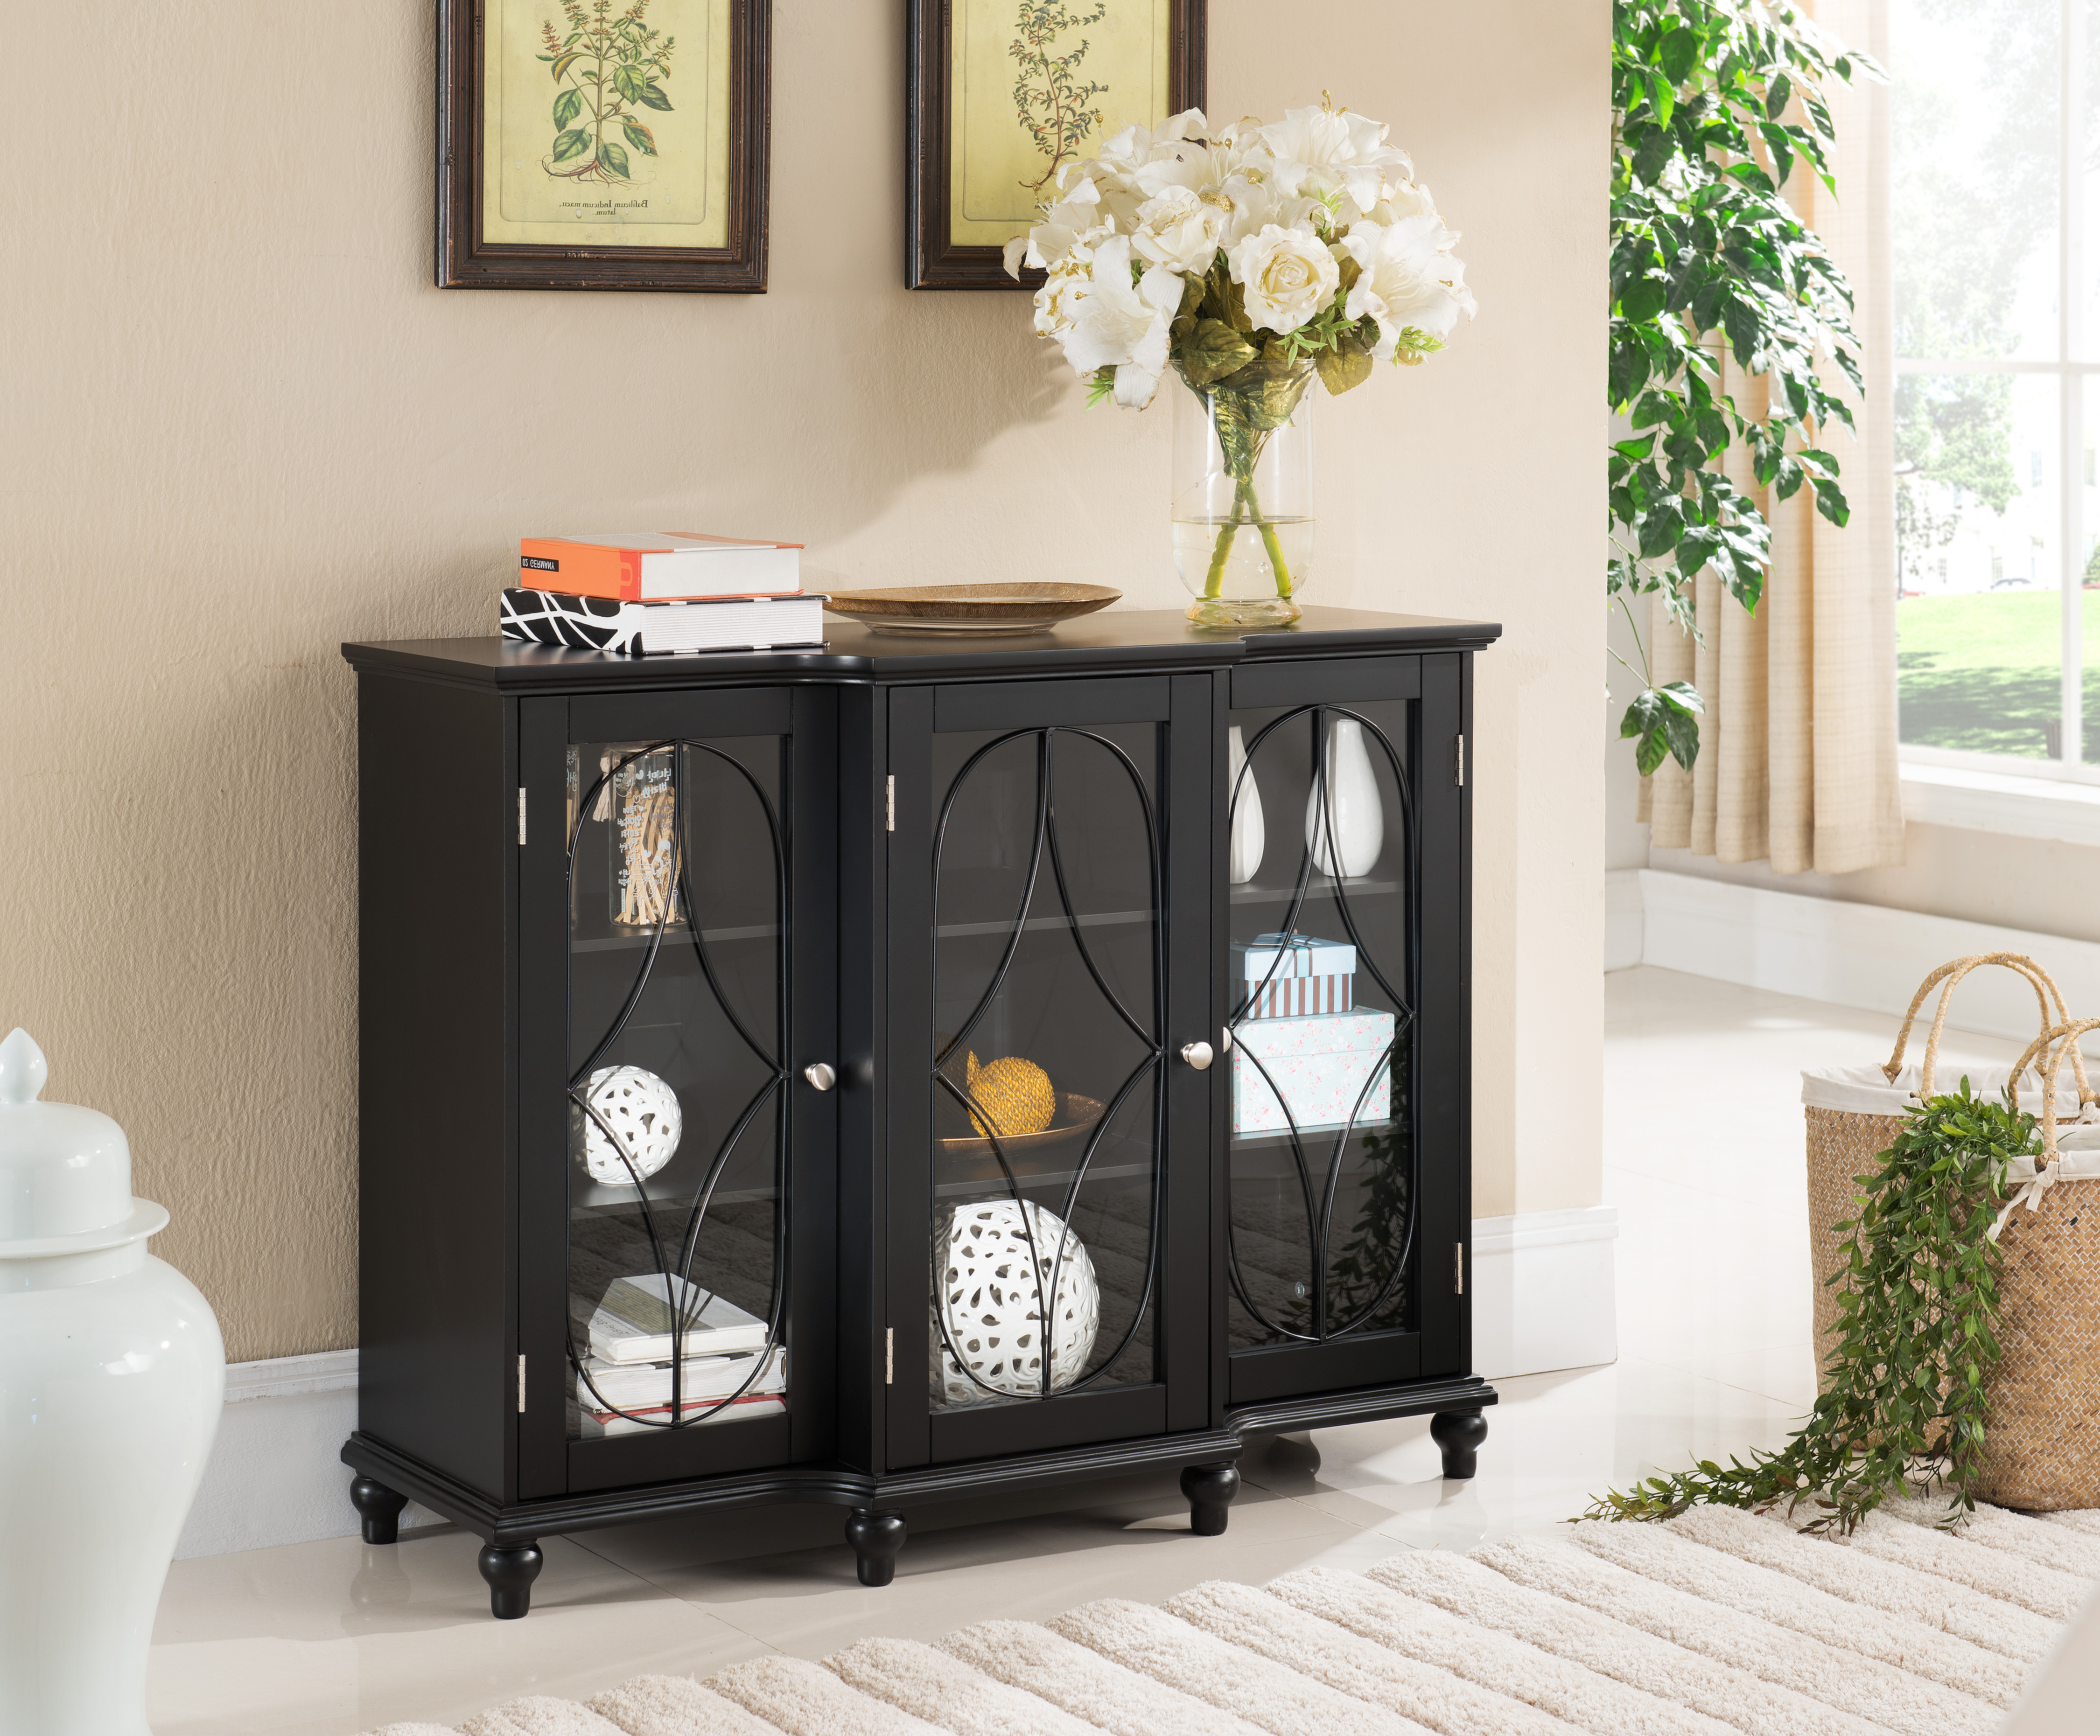 Logan Black Wood Contemporary Sideboard Buffet Console Table China Cabinet With Glass Doors & Storage With Regard To Contemporary Rolling Buffets (View 21 of 30)